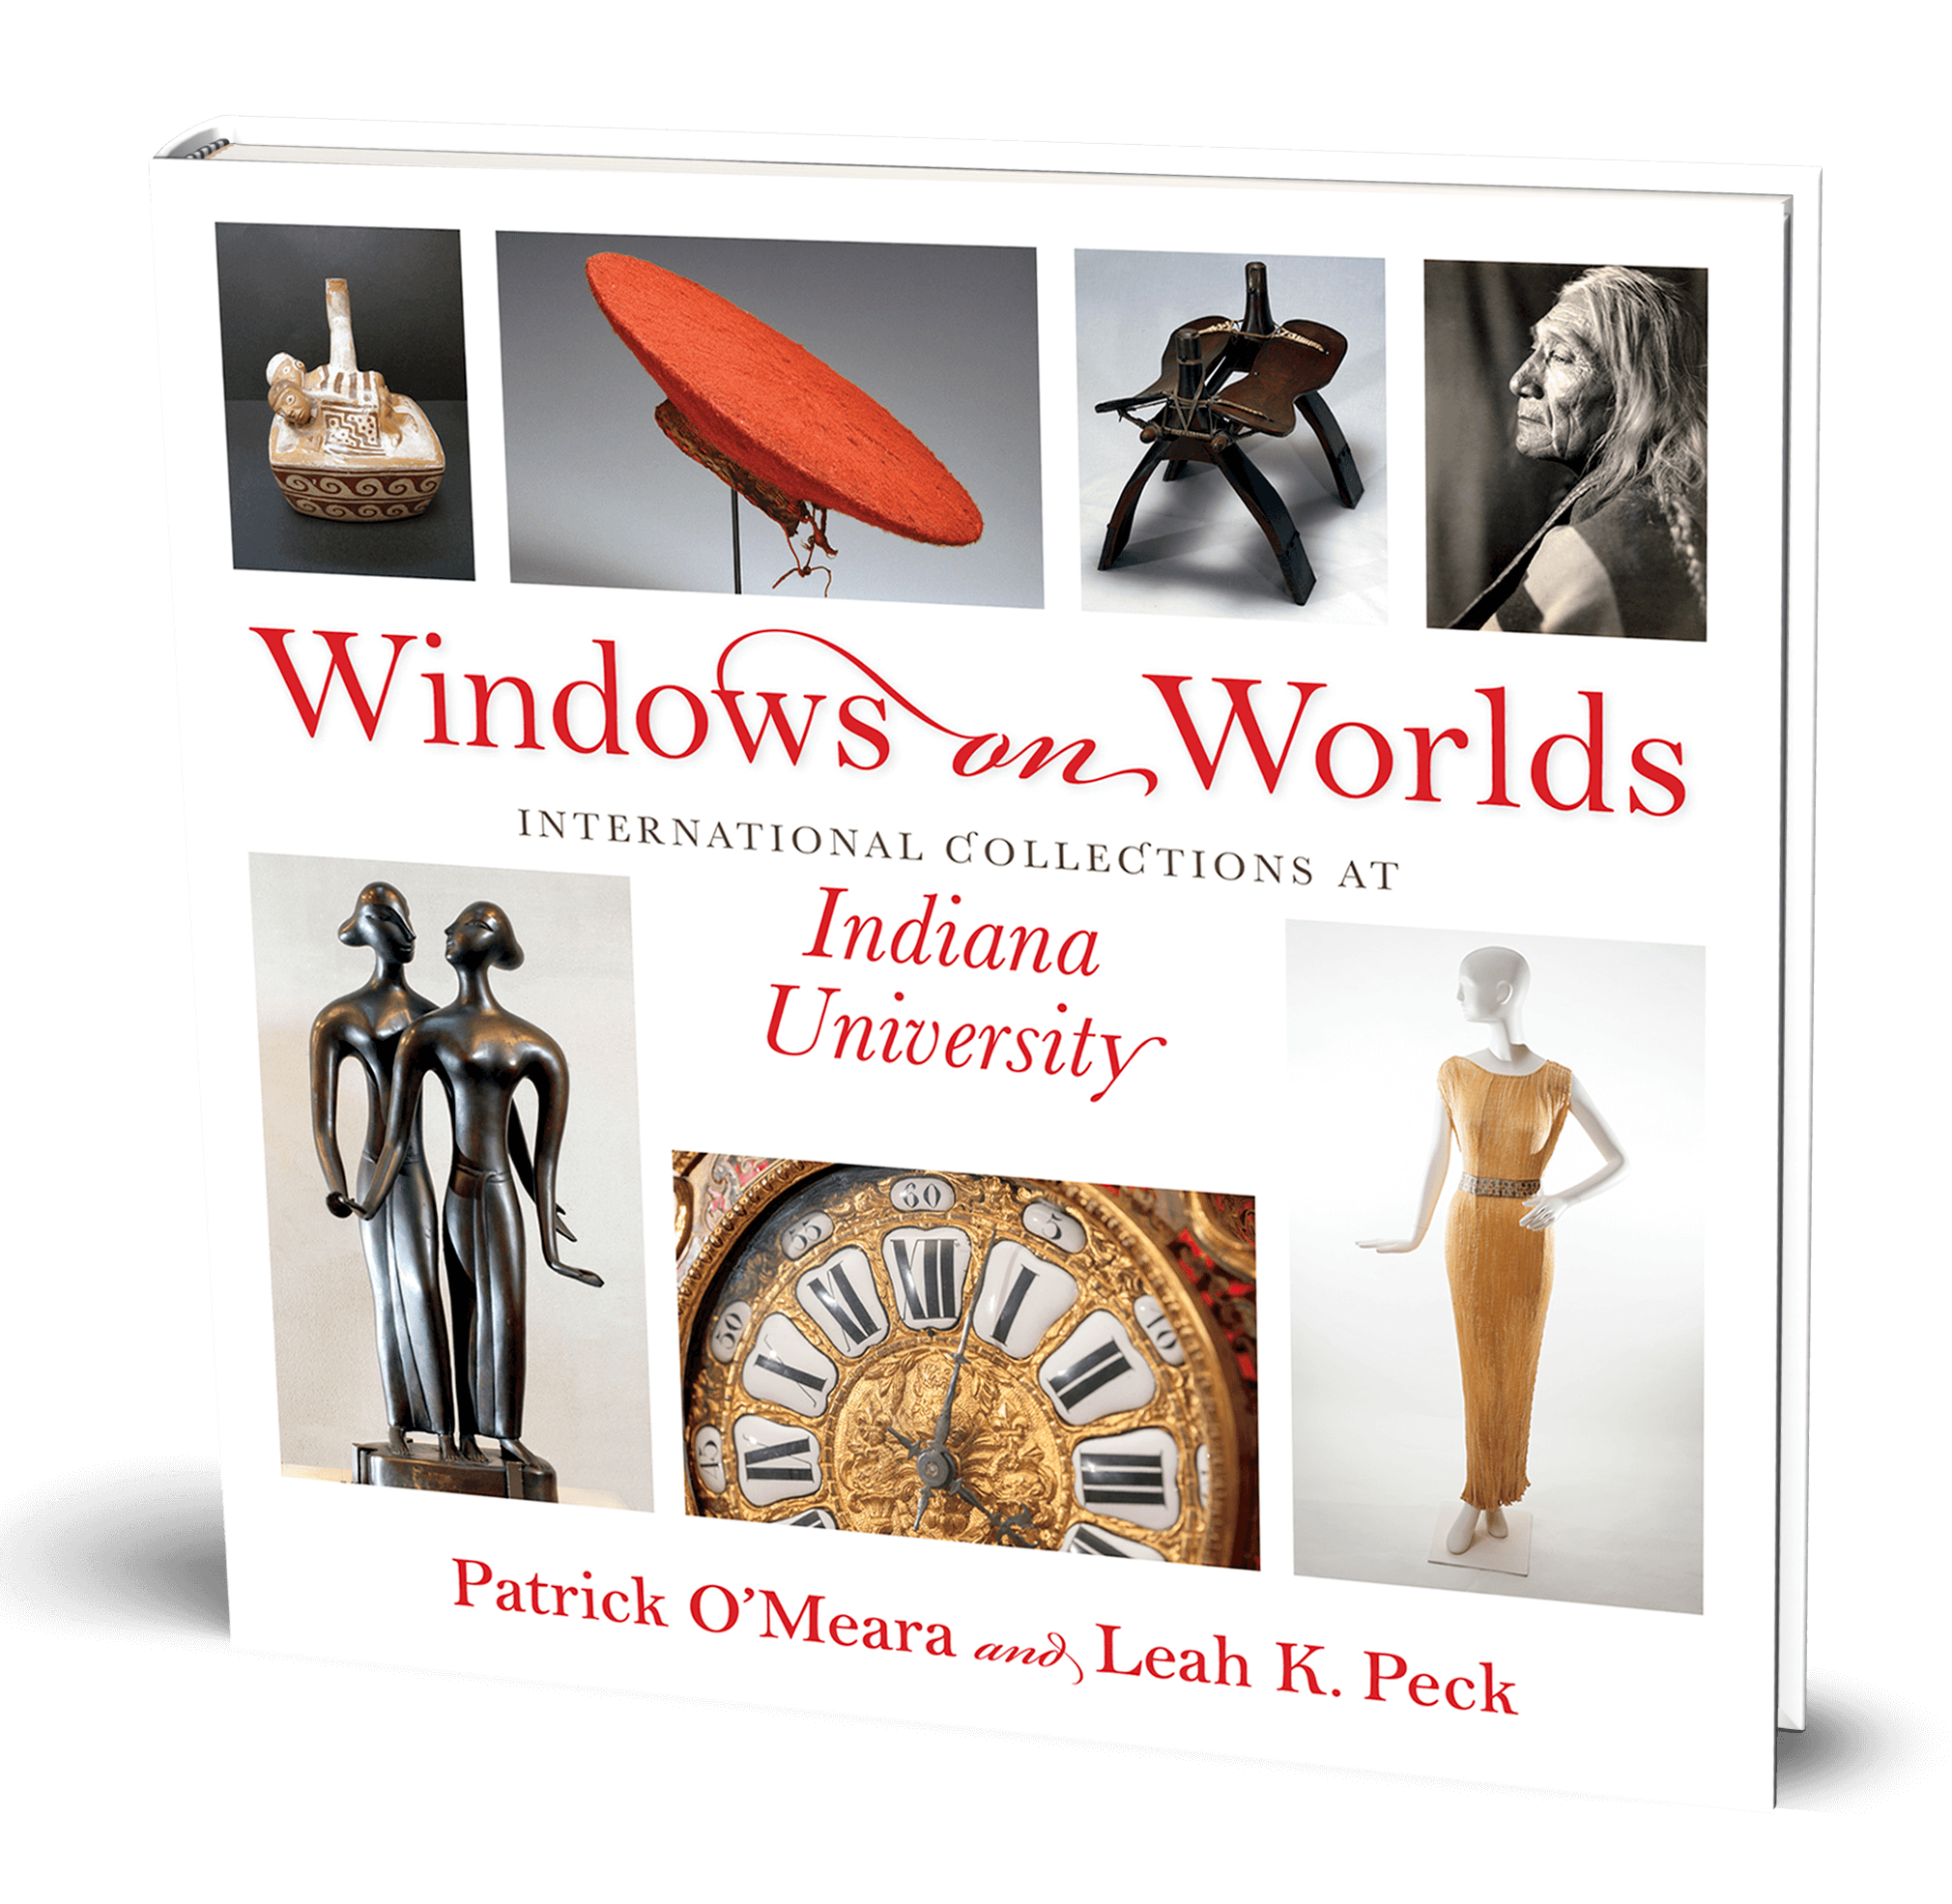 Windows on Worlds International Collections at Indiana University by Patrick O